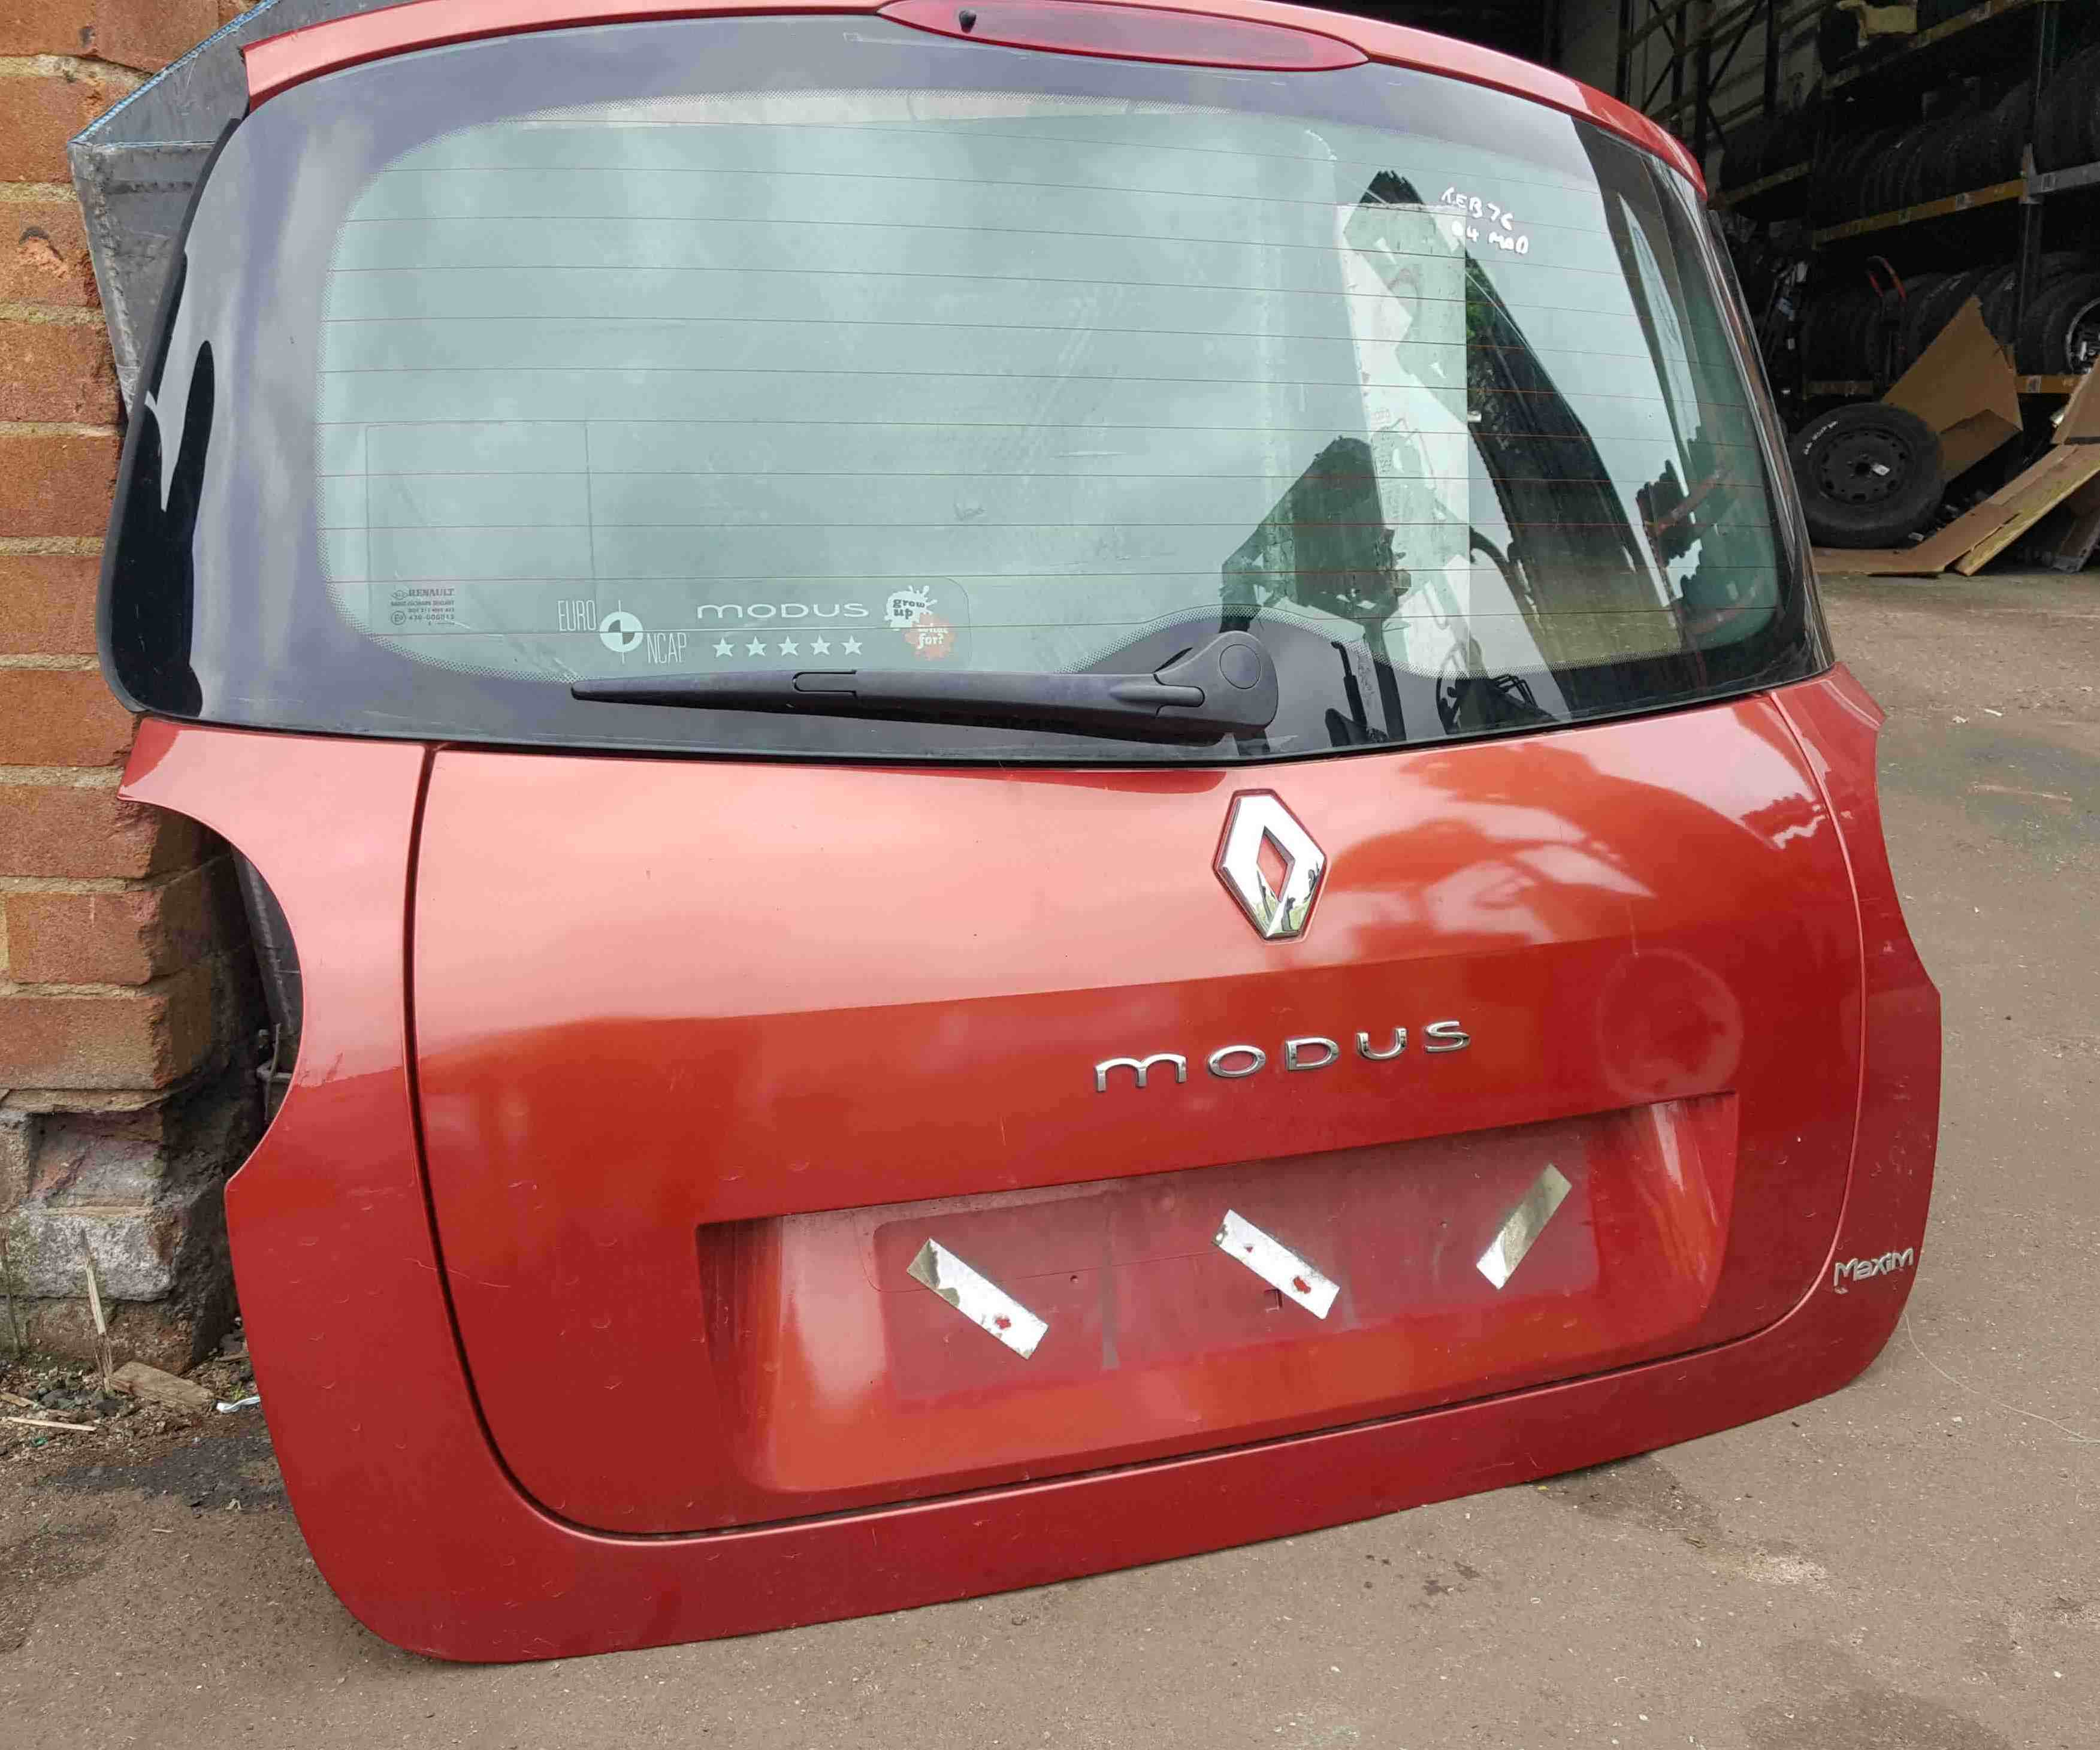 Renault Modus 2004-2008 Rear Tailgate Boot Red TEB76